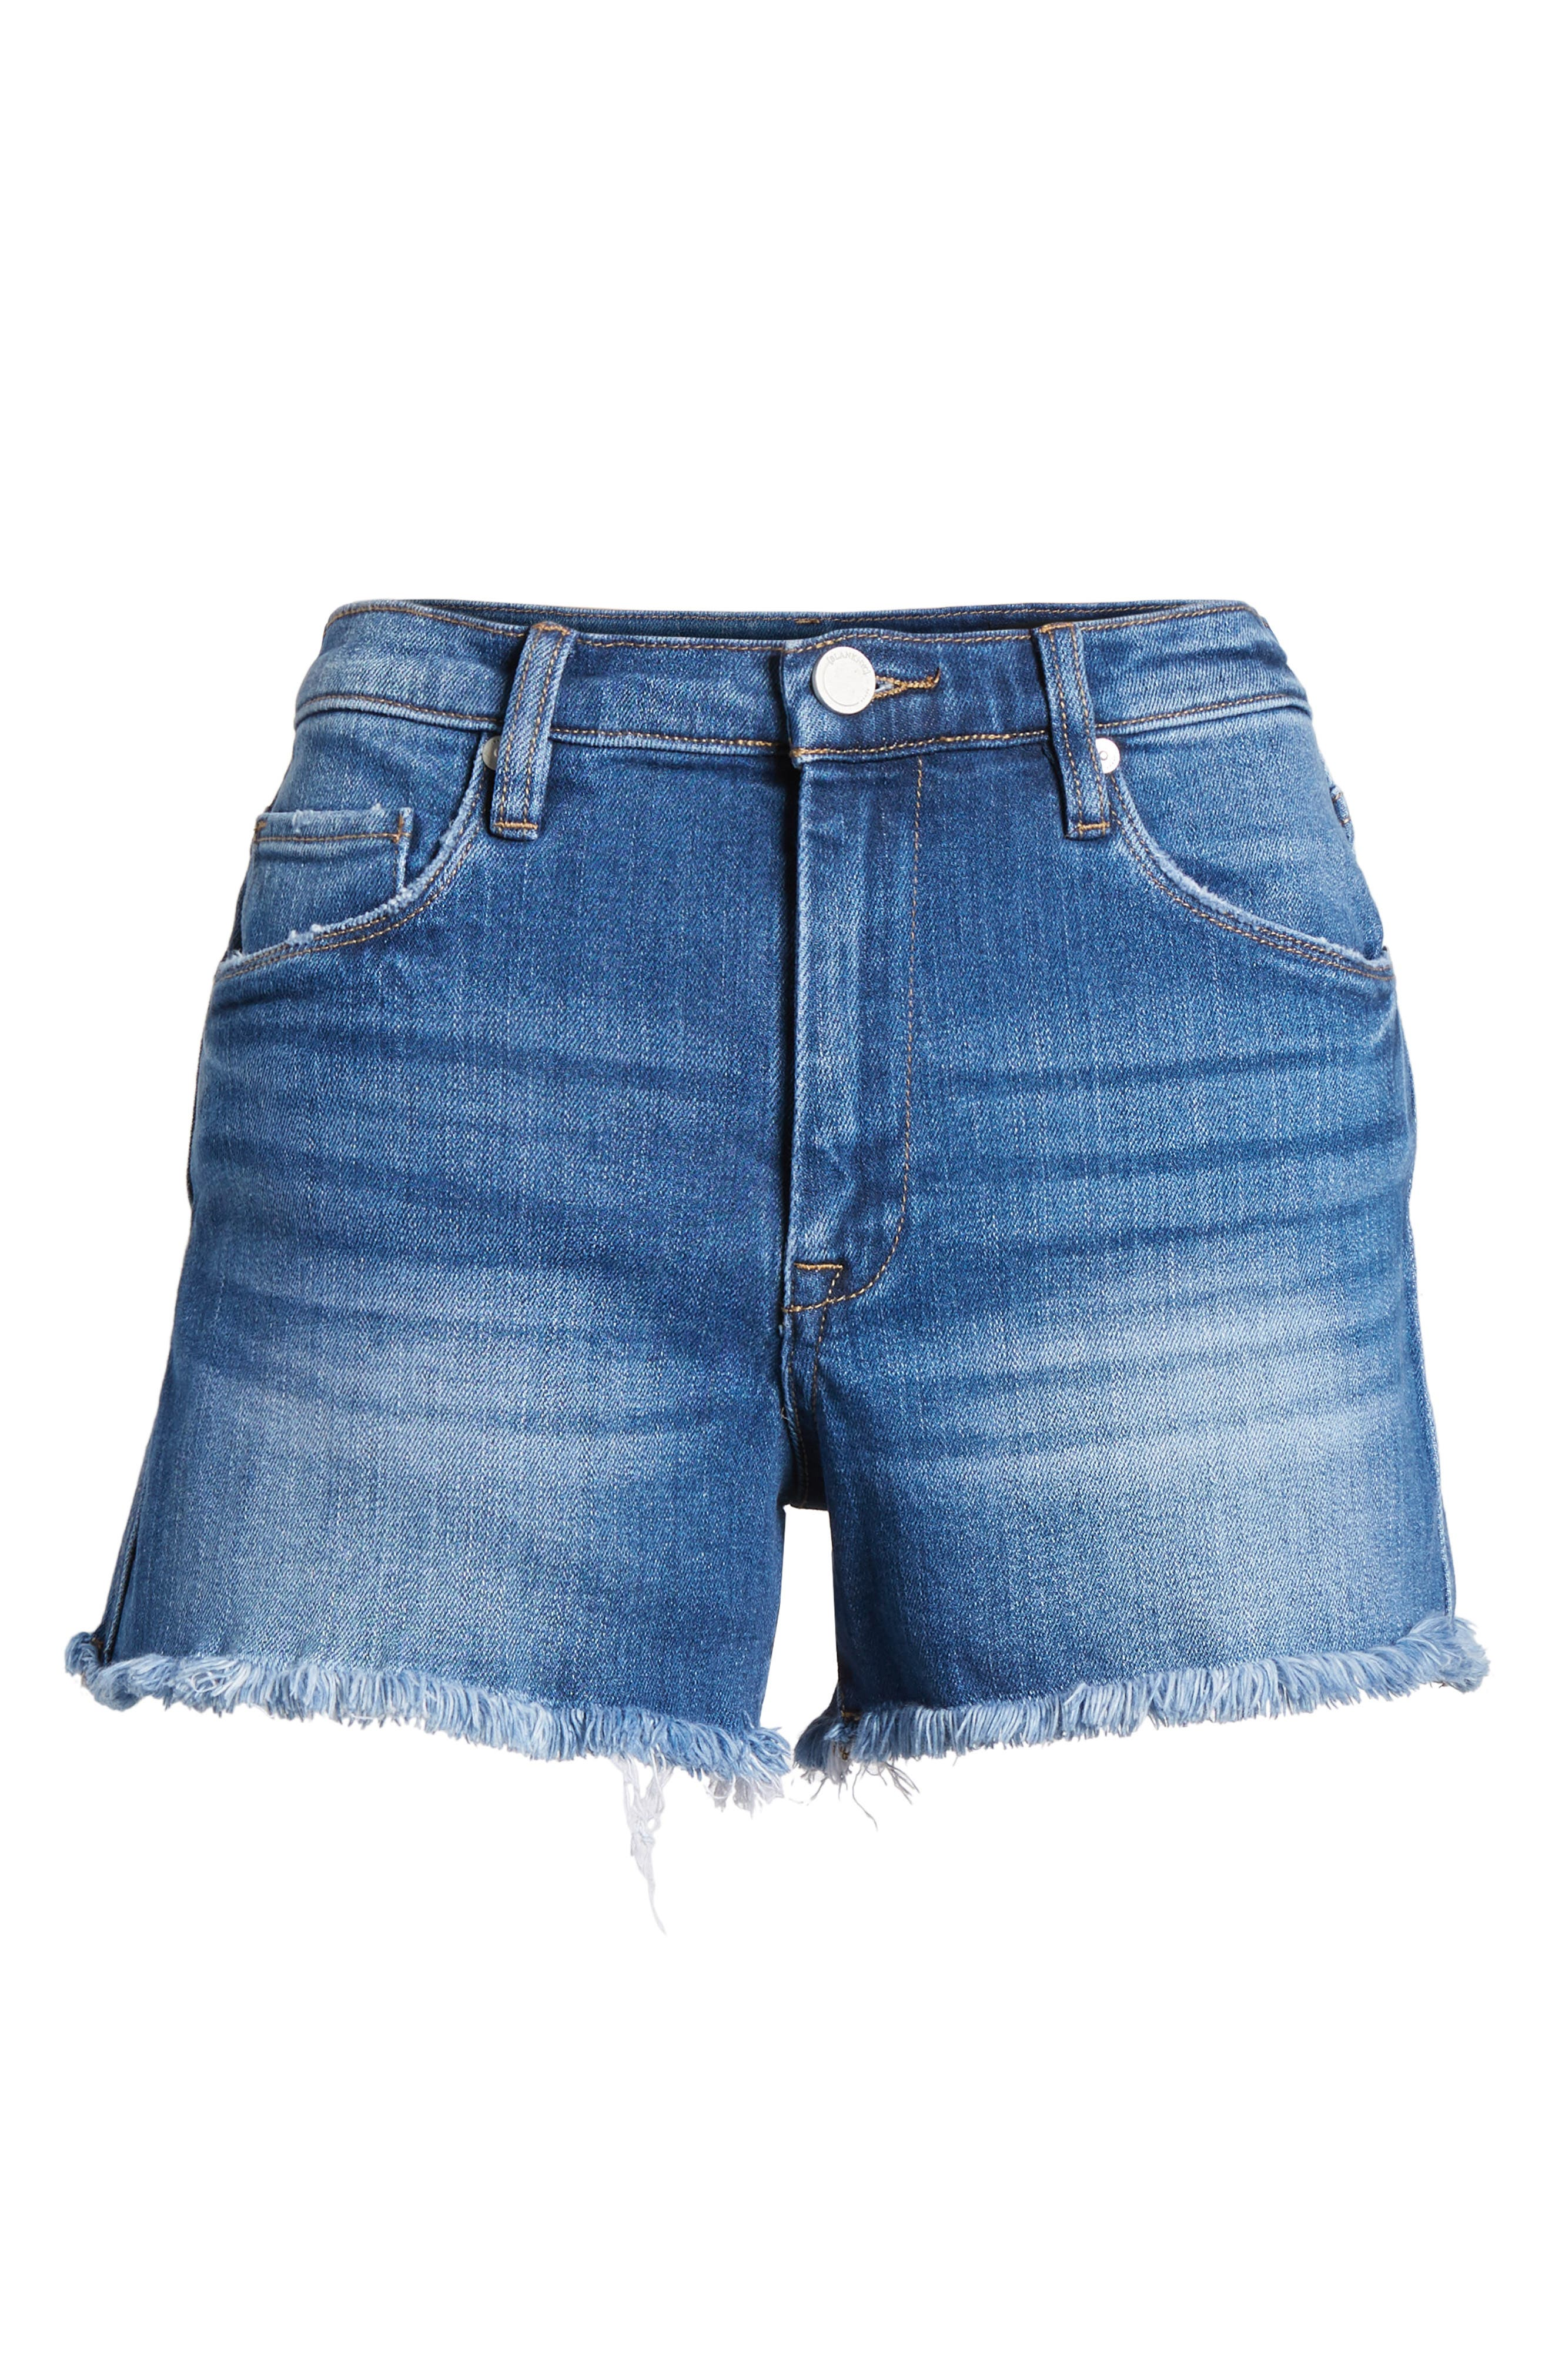 The Lenox High Waist Cutoff Denim Shorts,                             Alternate thumbnail 7, color,                             400